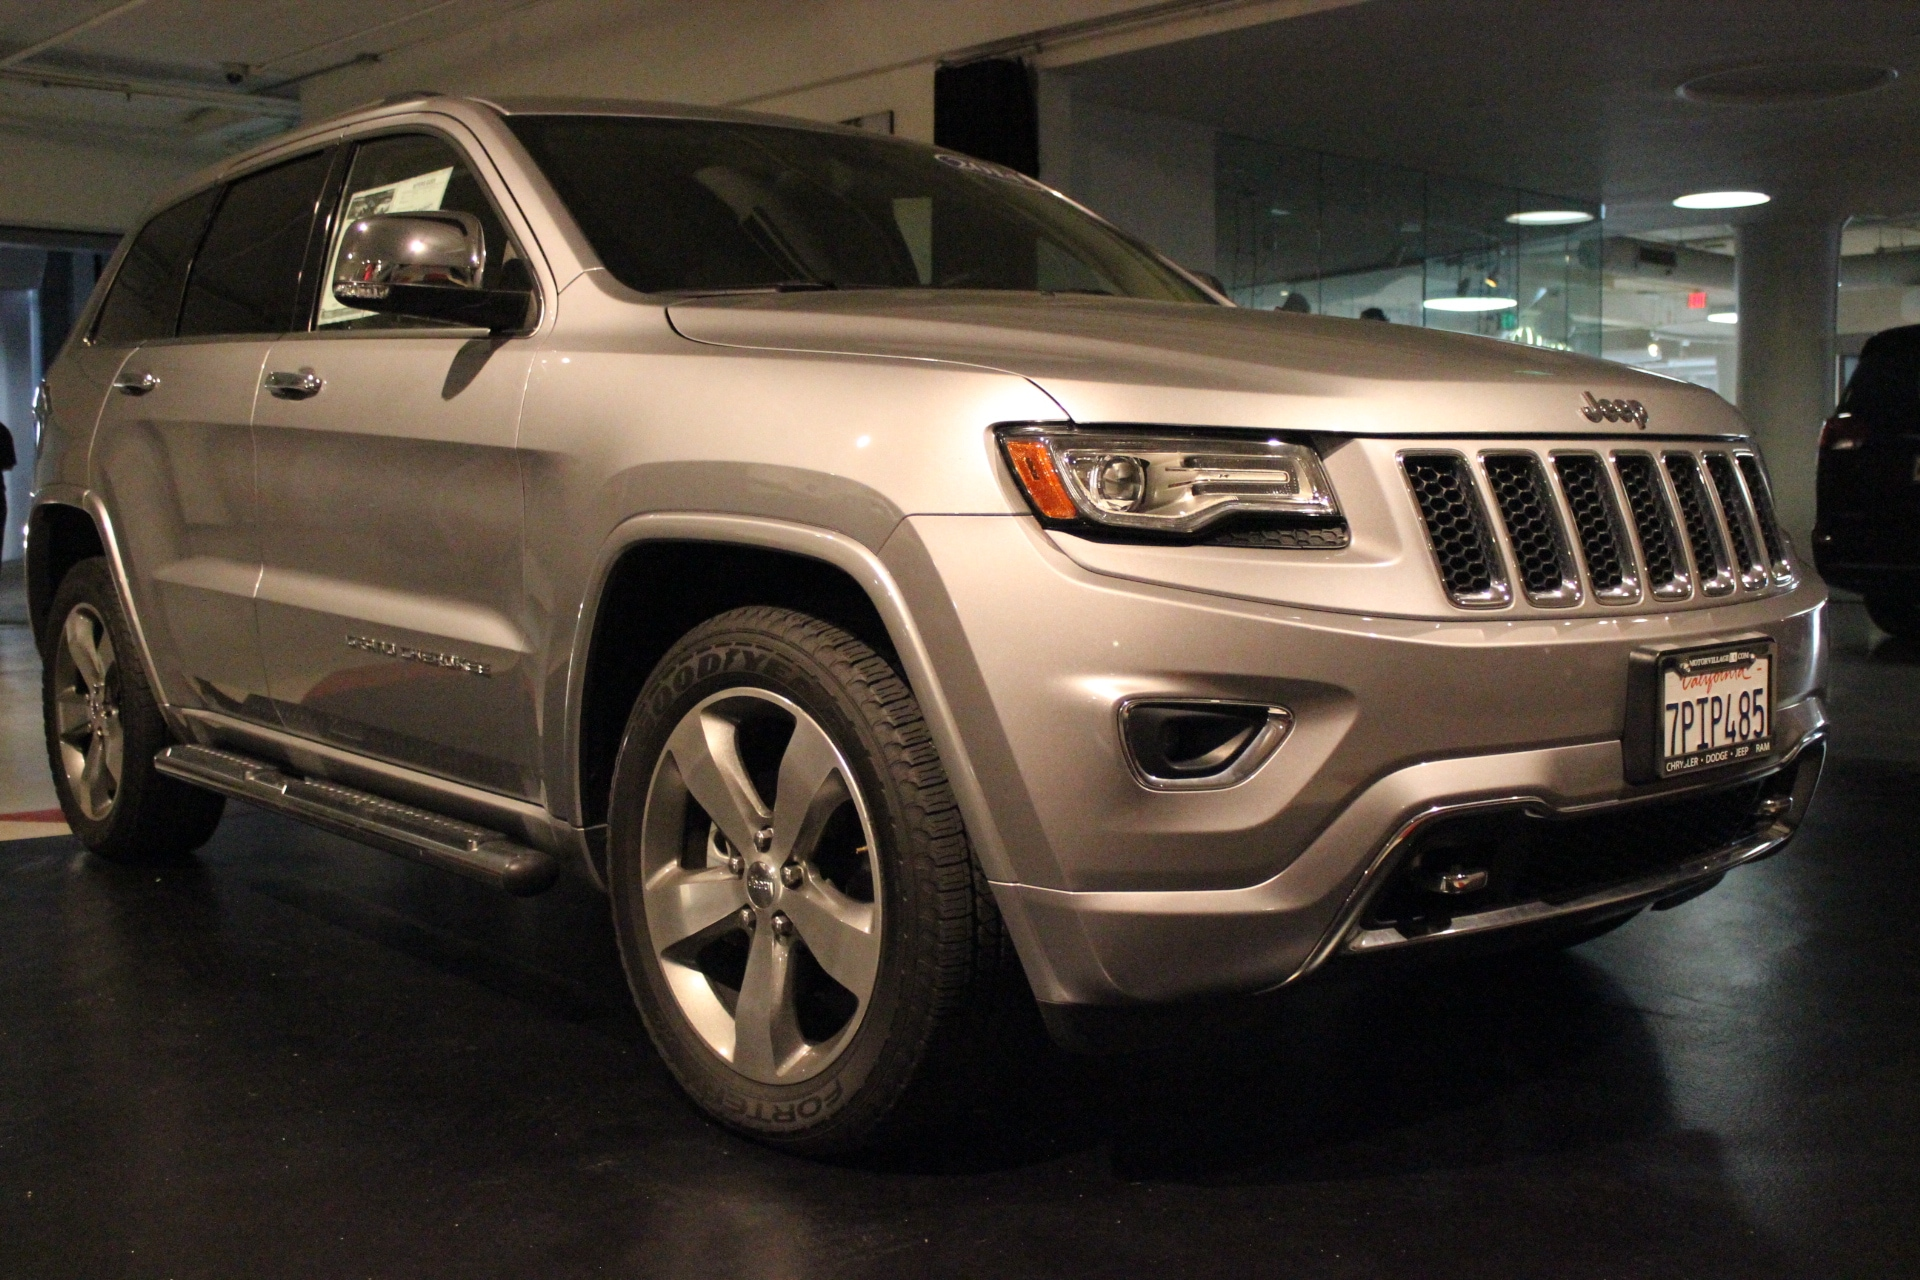 2014 Jeep Grand Cherokee Overland 4x2 This 2014 Jeep Grand Cherokee Overland is proudly offered by